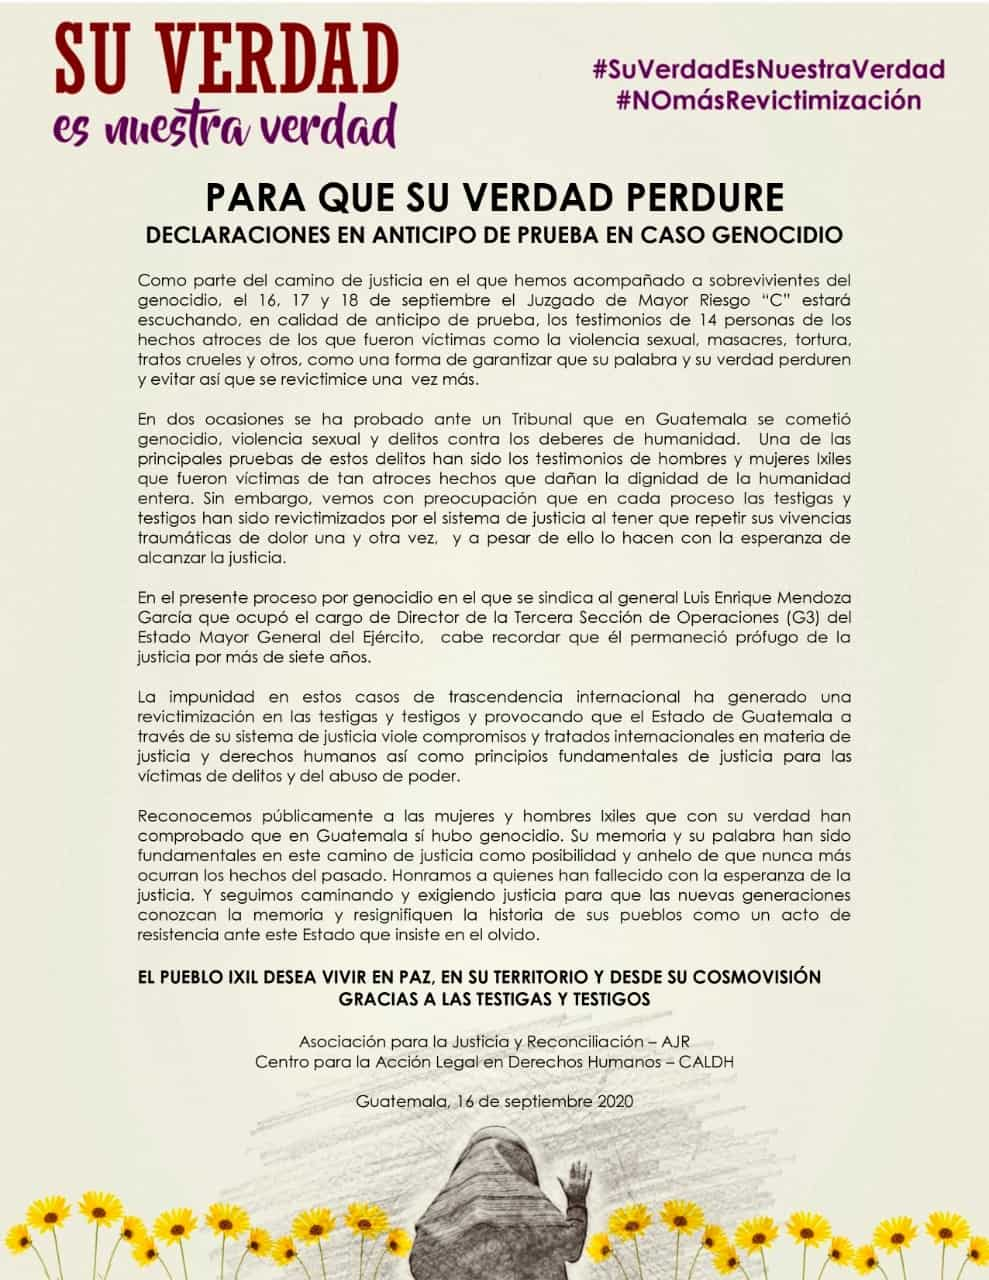 Flyer of a statement. Below there is a picture of an ixil woman giving her testimony surrounded by yellow flowers